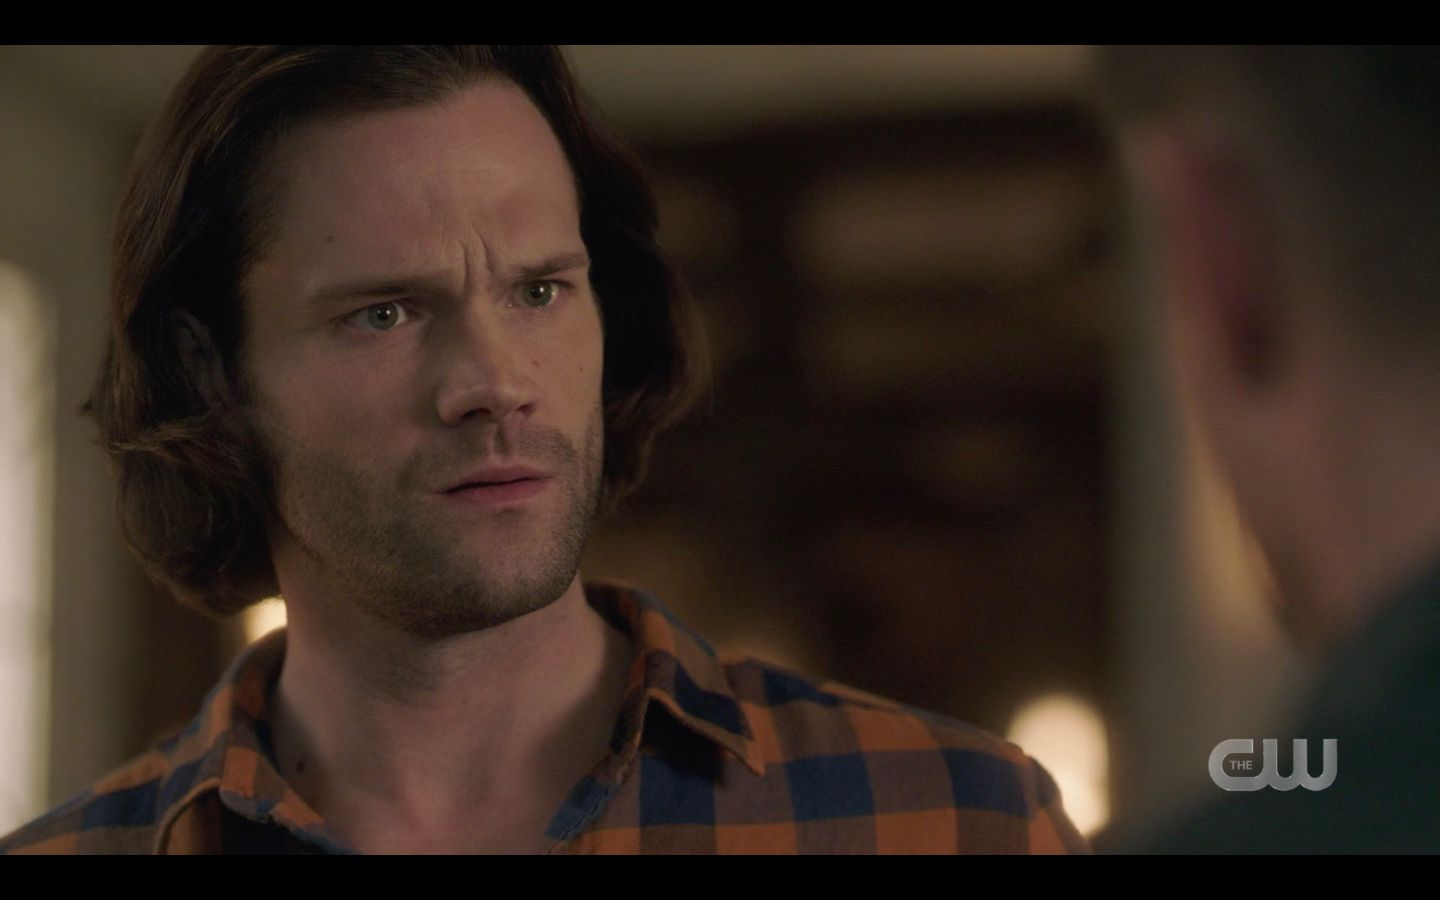 Sam Winchester to Dean oh yeah lets talk to Nick Game Night